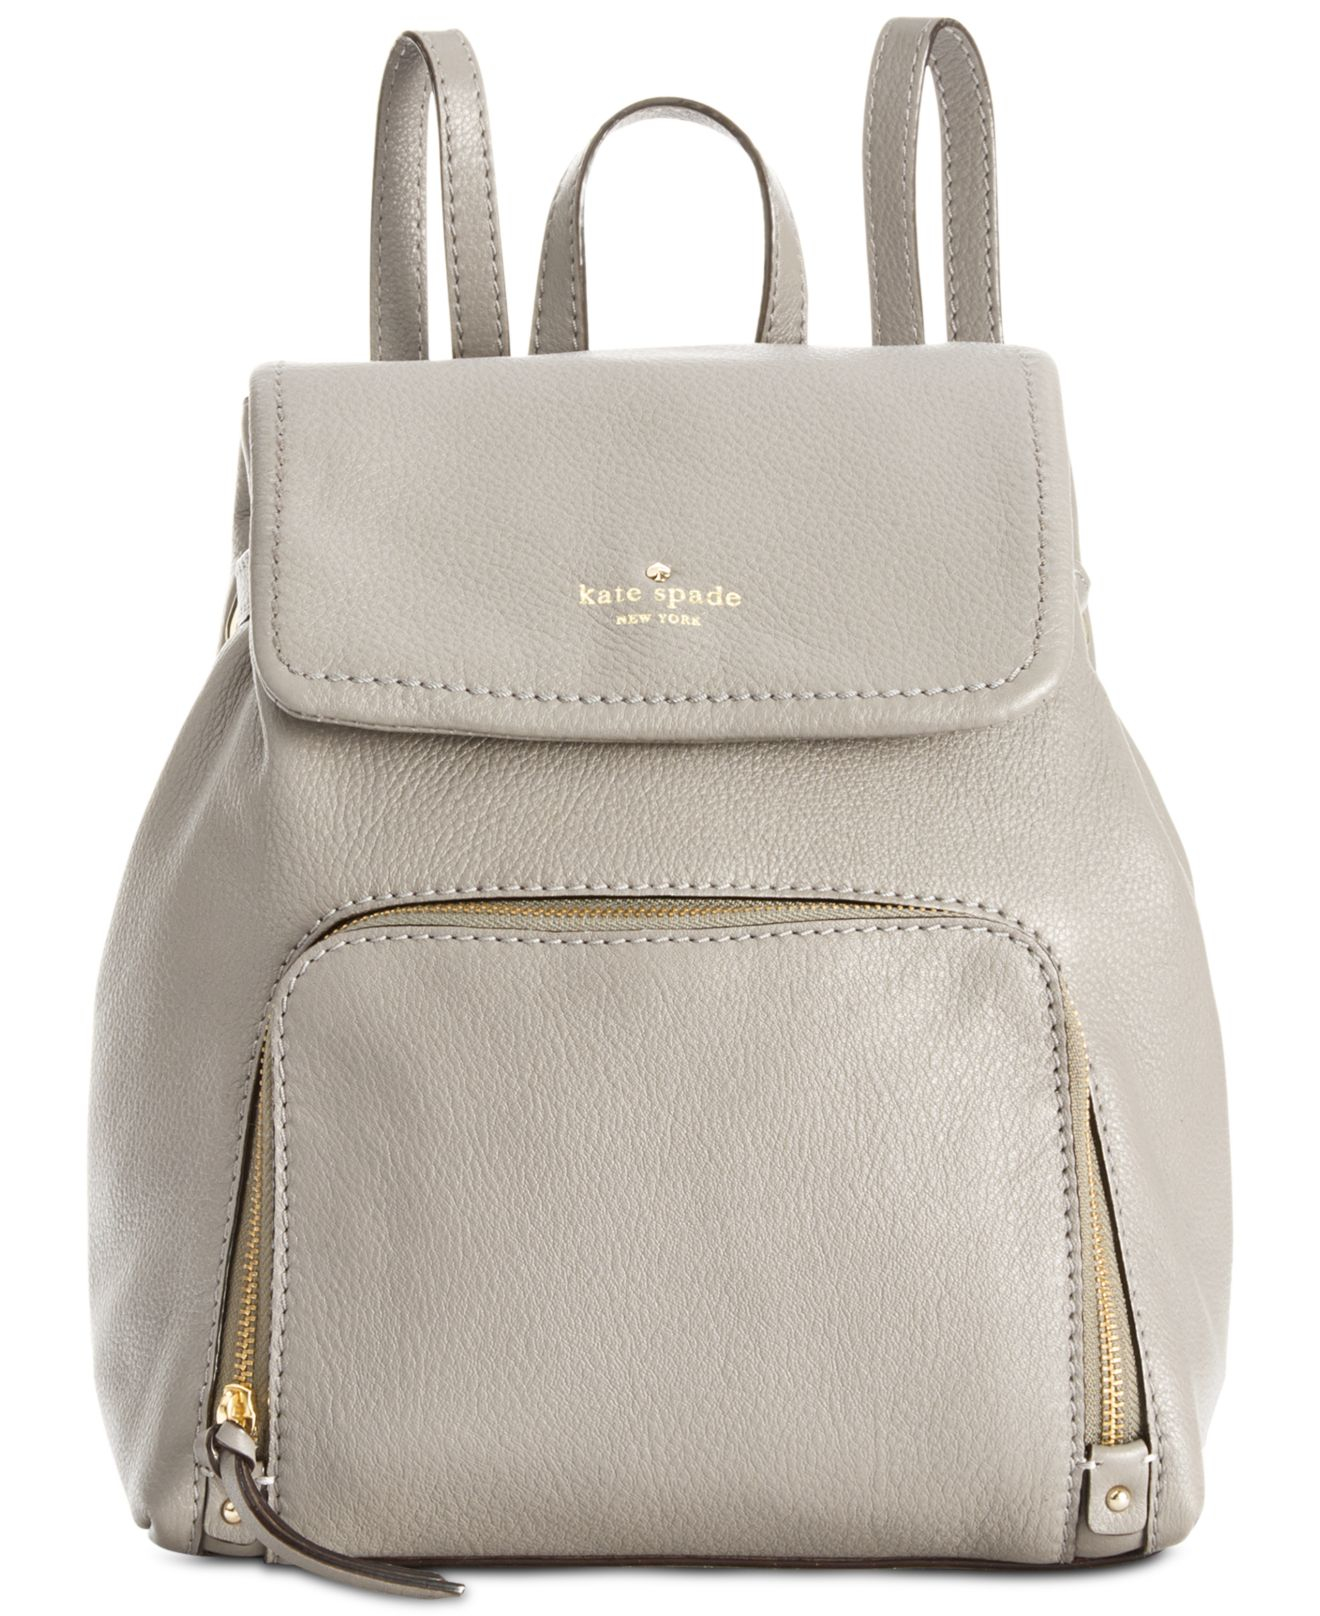 Leather Backpack Purse Kate Spade Fenix Toulouse Handball 79d94cdcc0857